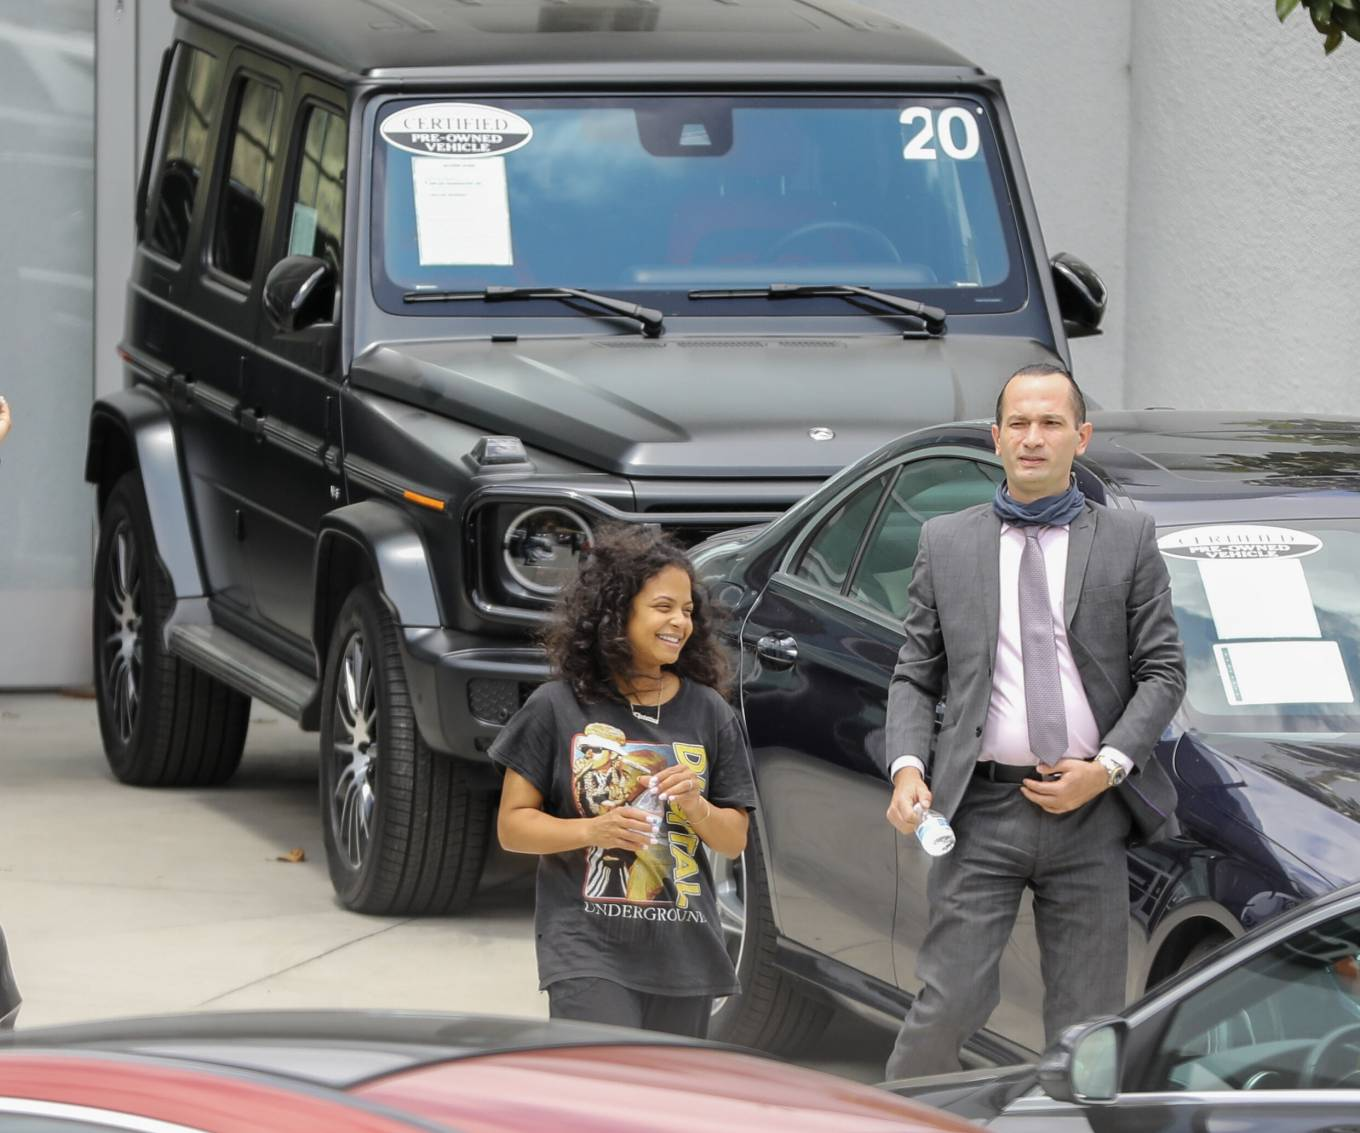 Christina Milian 2021 : Christina Milian – Seen without makeup in Los Angeles at Mercedes dealership-10